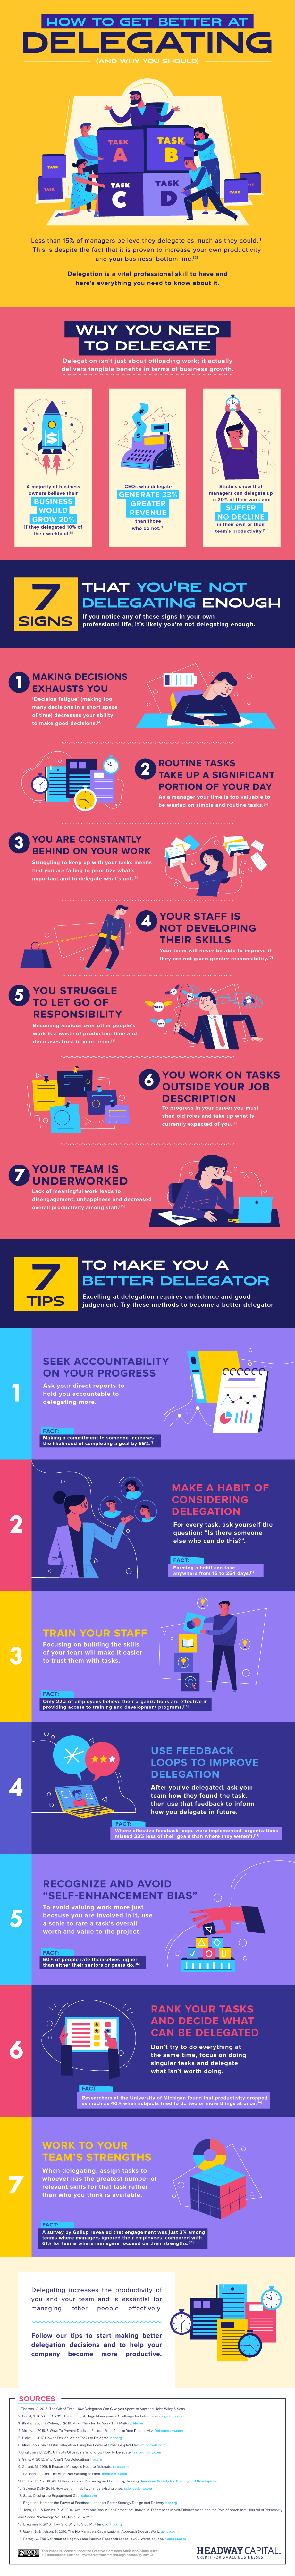 An infographic describing tips to improve delegation skills